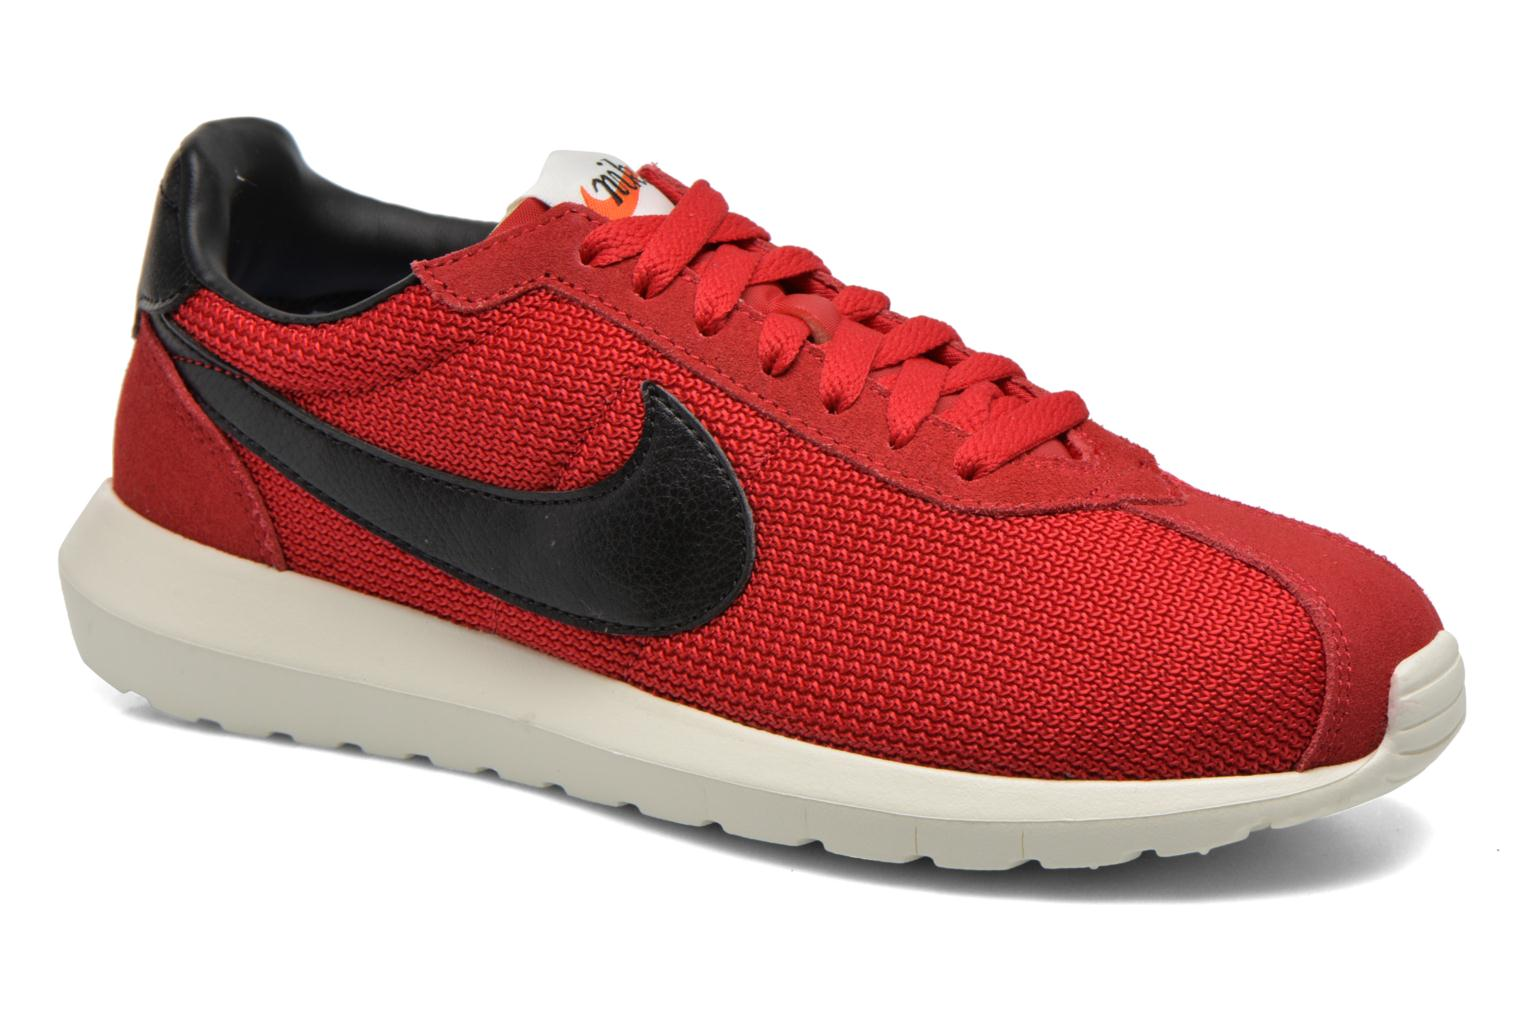 Nike Roshe Ld-1000 Gym Red/Black-Sail-Black